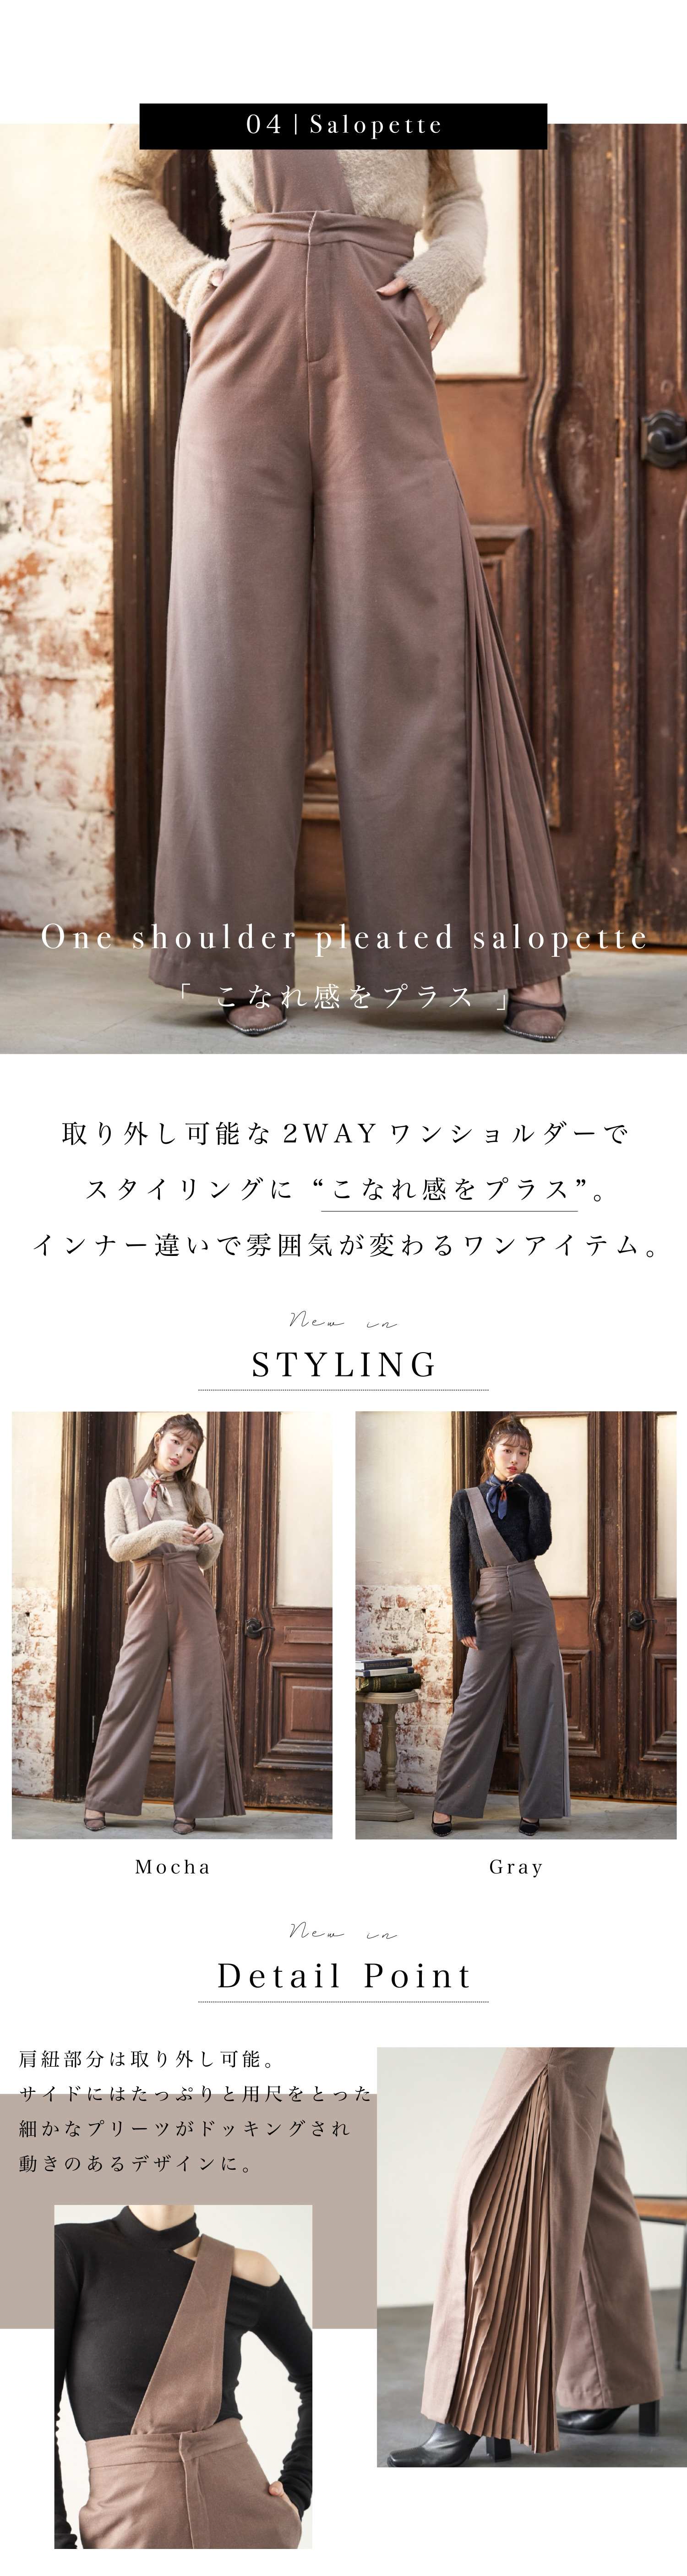 19AW ColoringWinter新作特集4